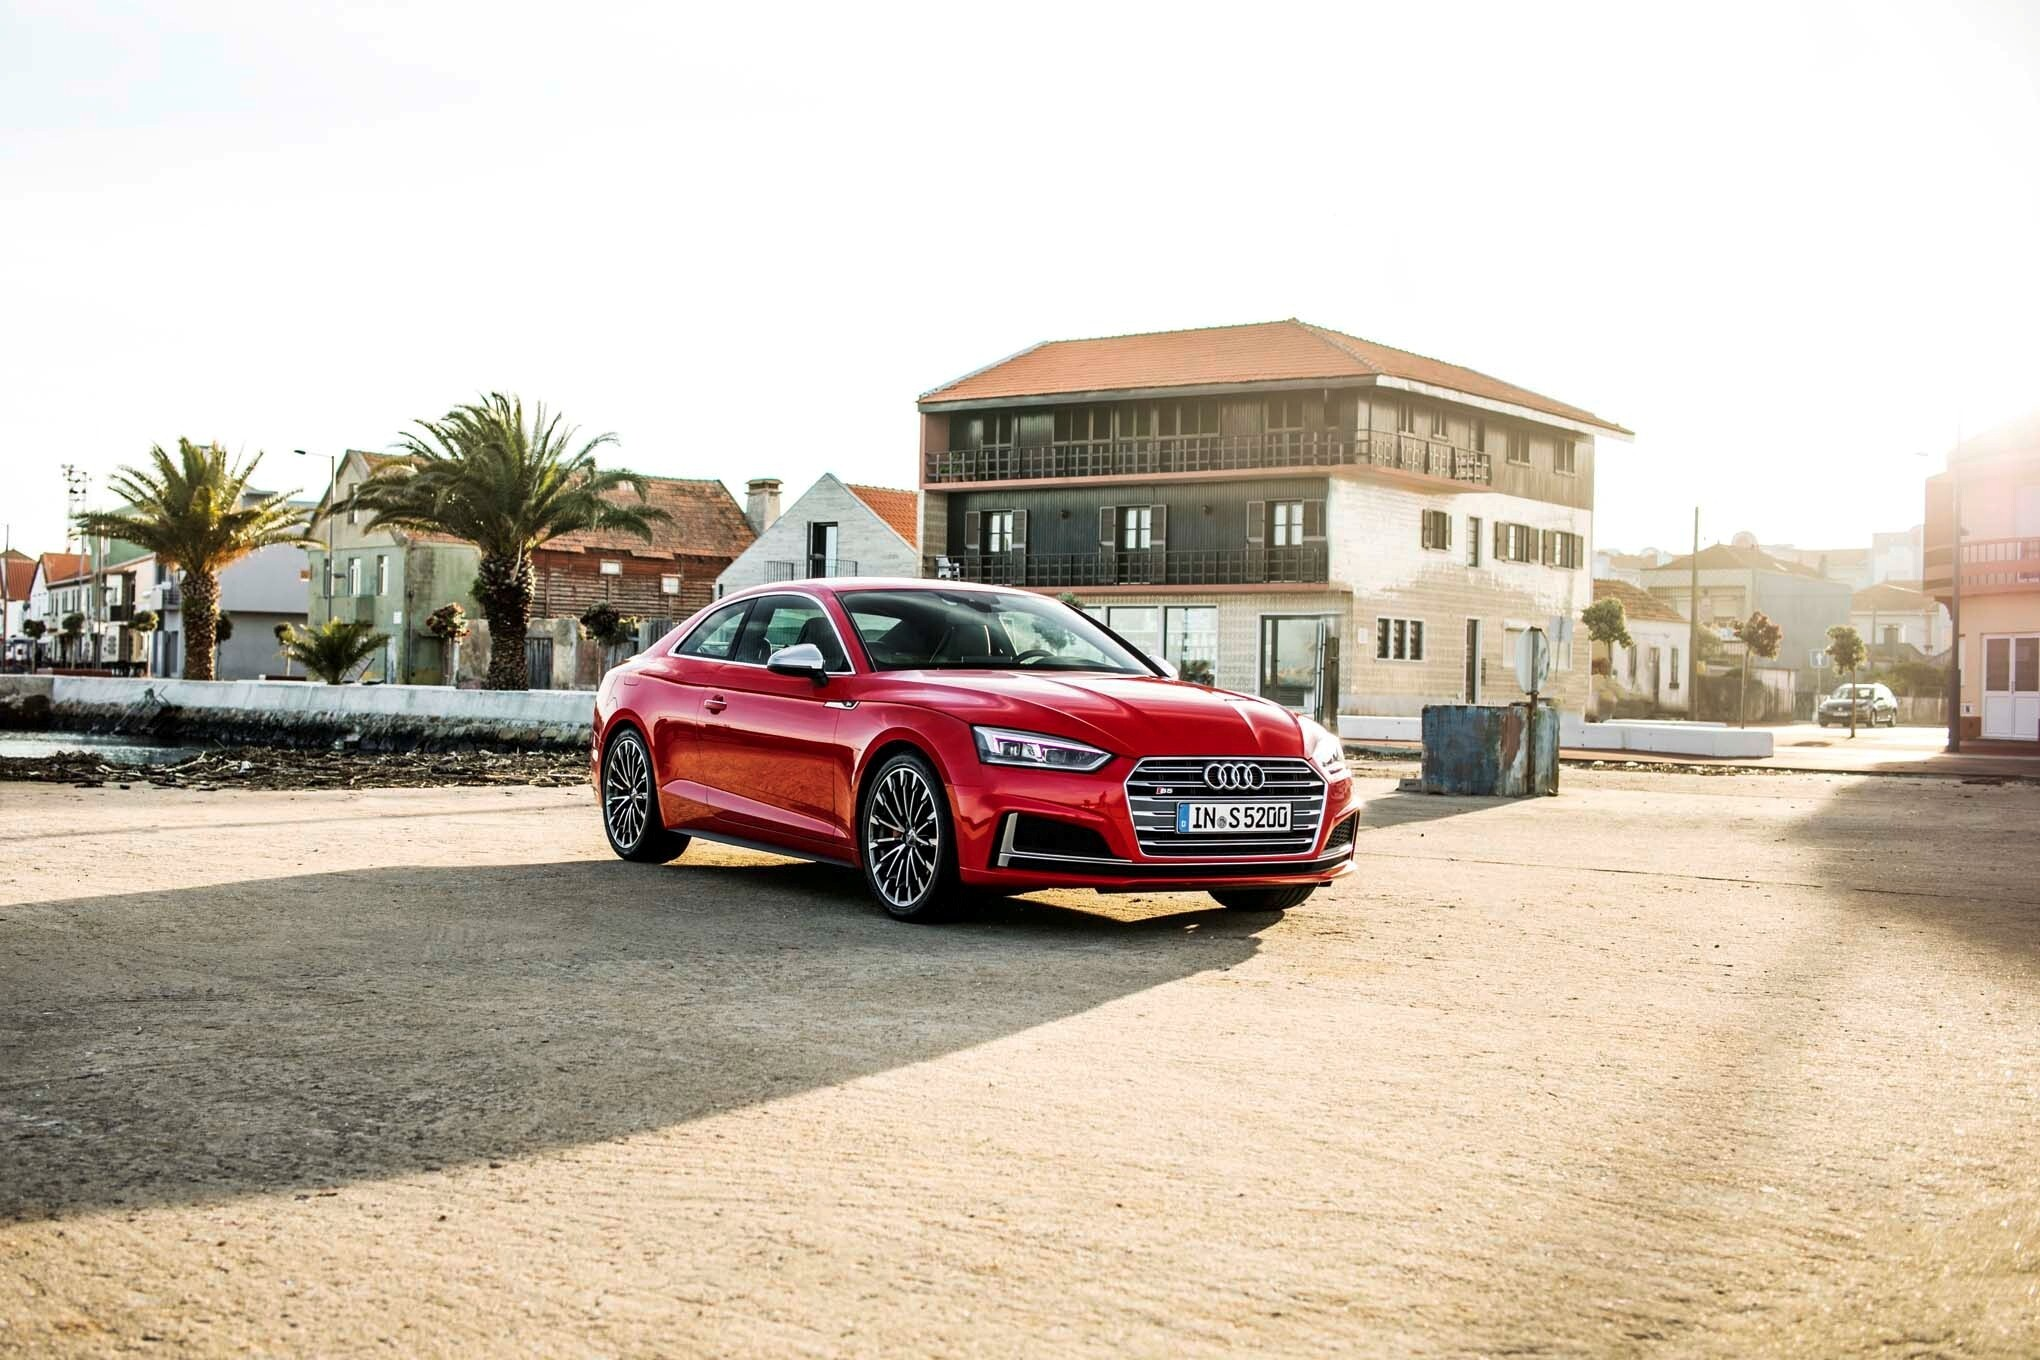 Audi s5 sportback 2018 red car photo hd wallpapers - Car wallpapers for galaxy s5 ...